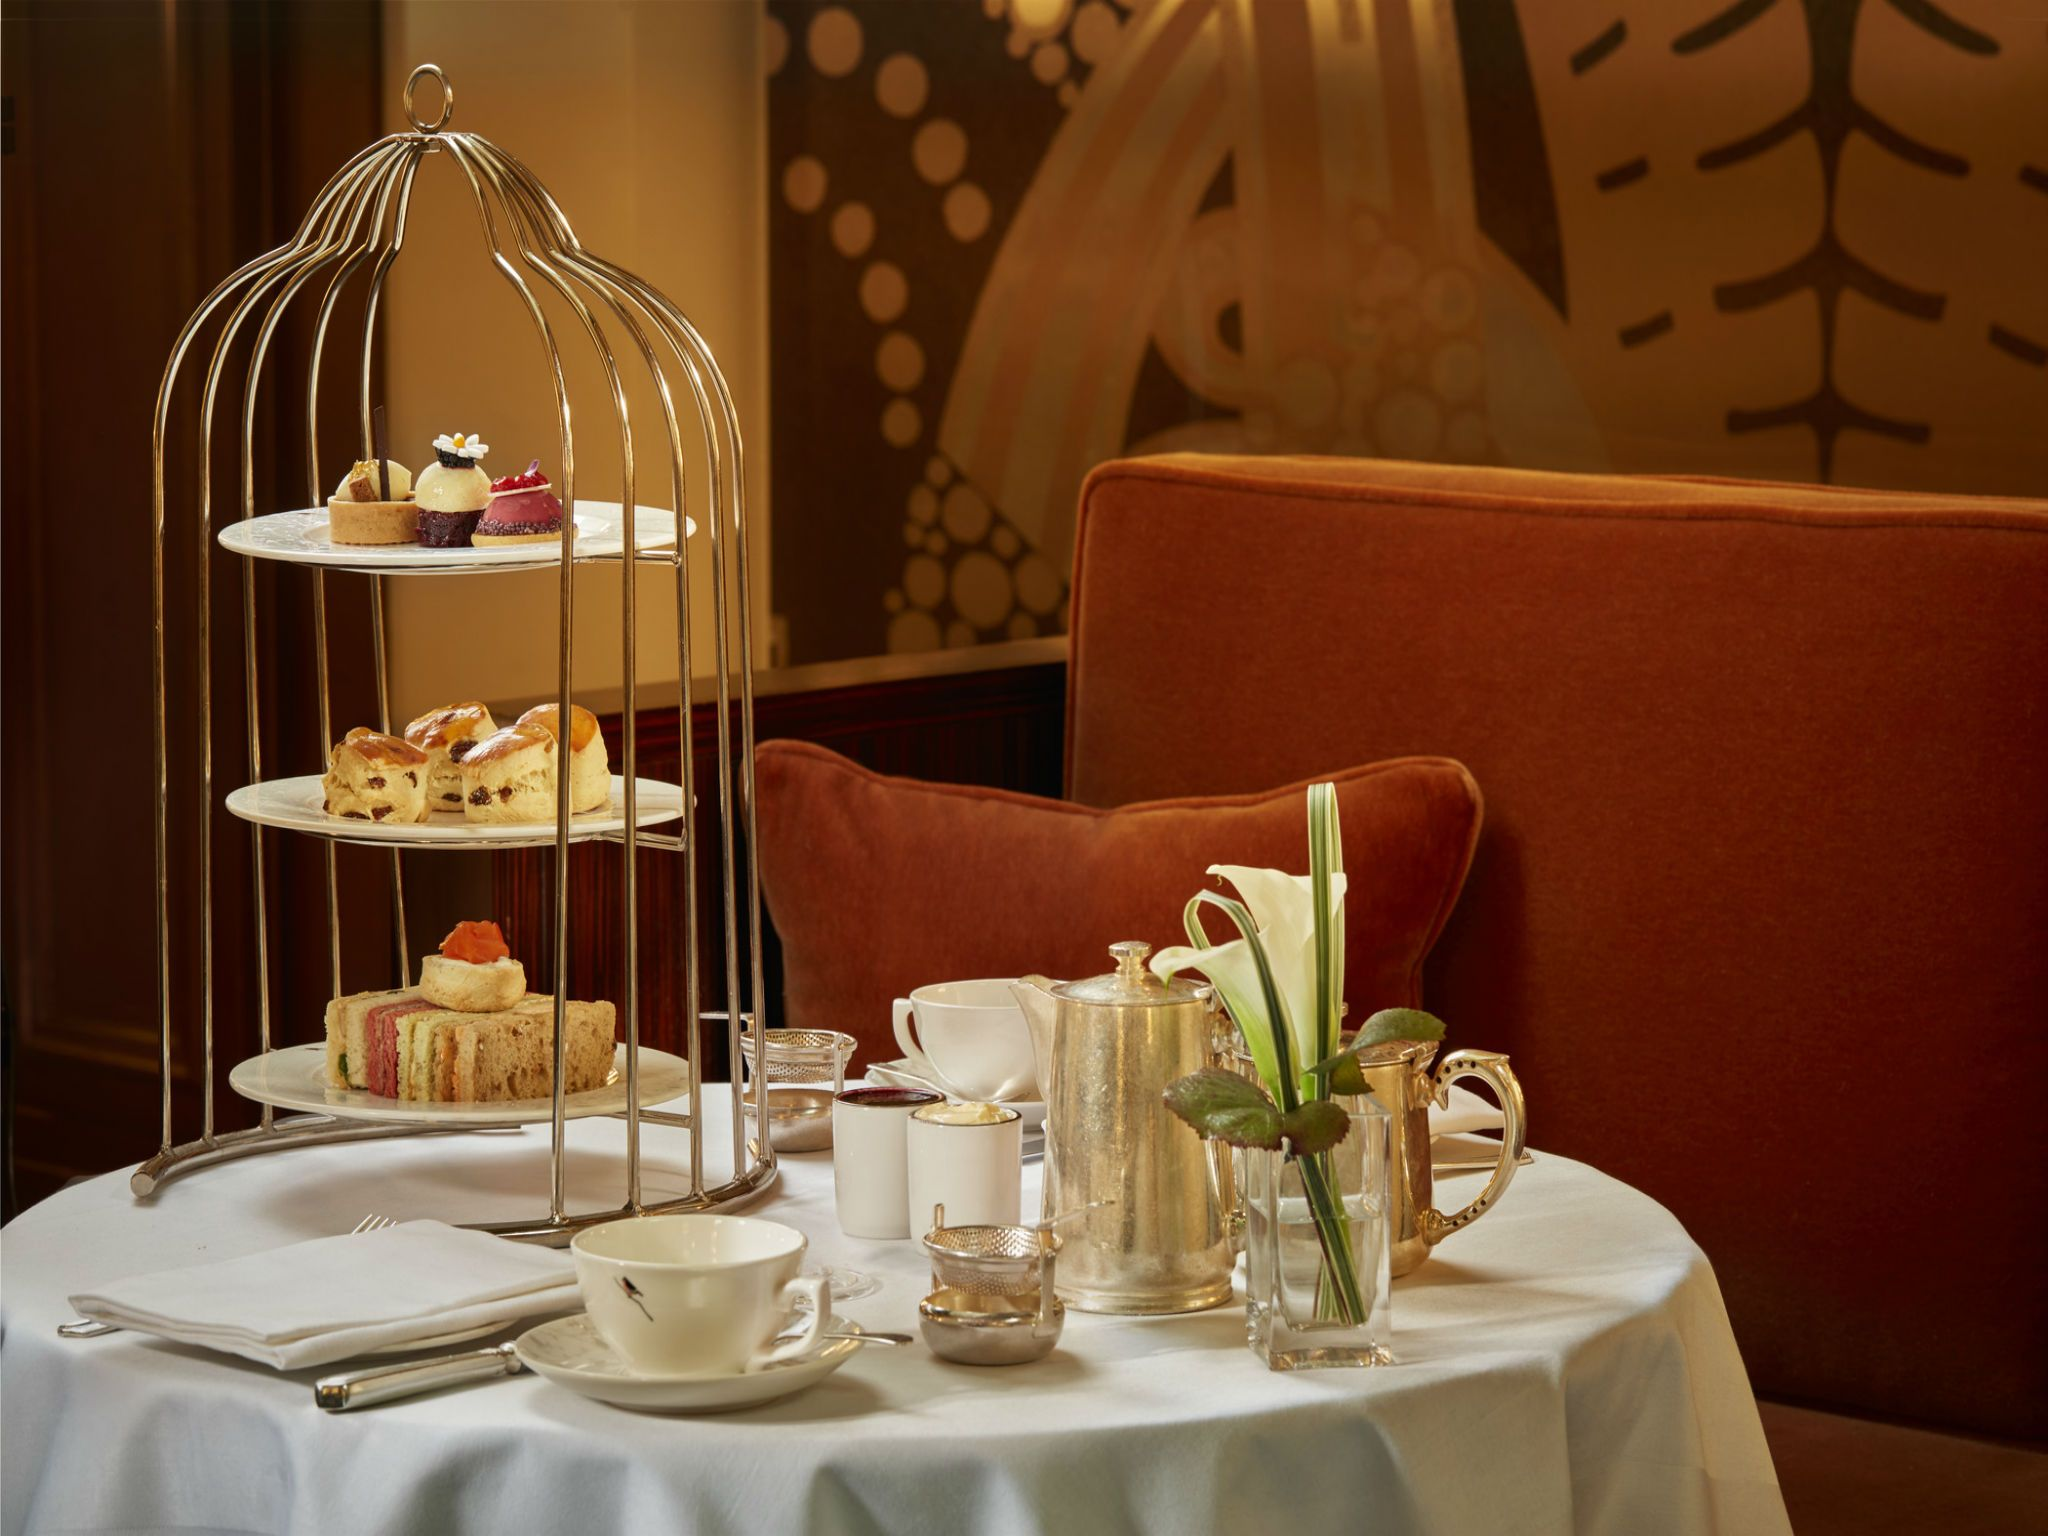 The afternoon tea experience at the Park Lane Palm Court